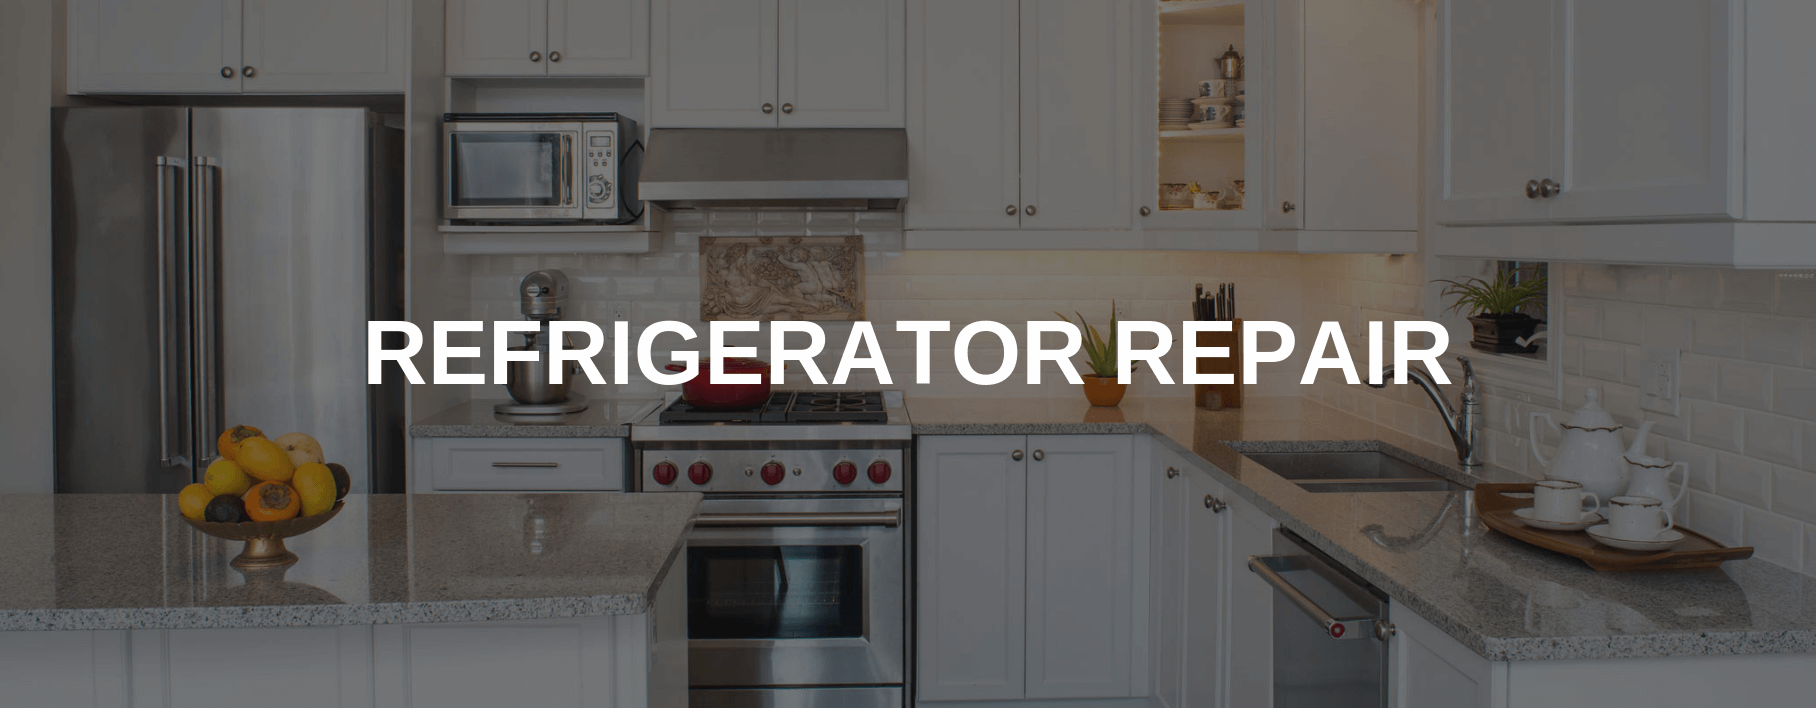 city refrigerator repair